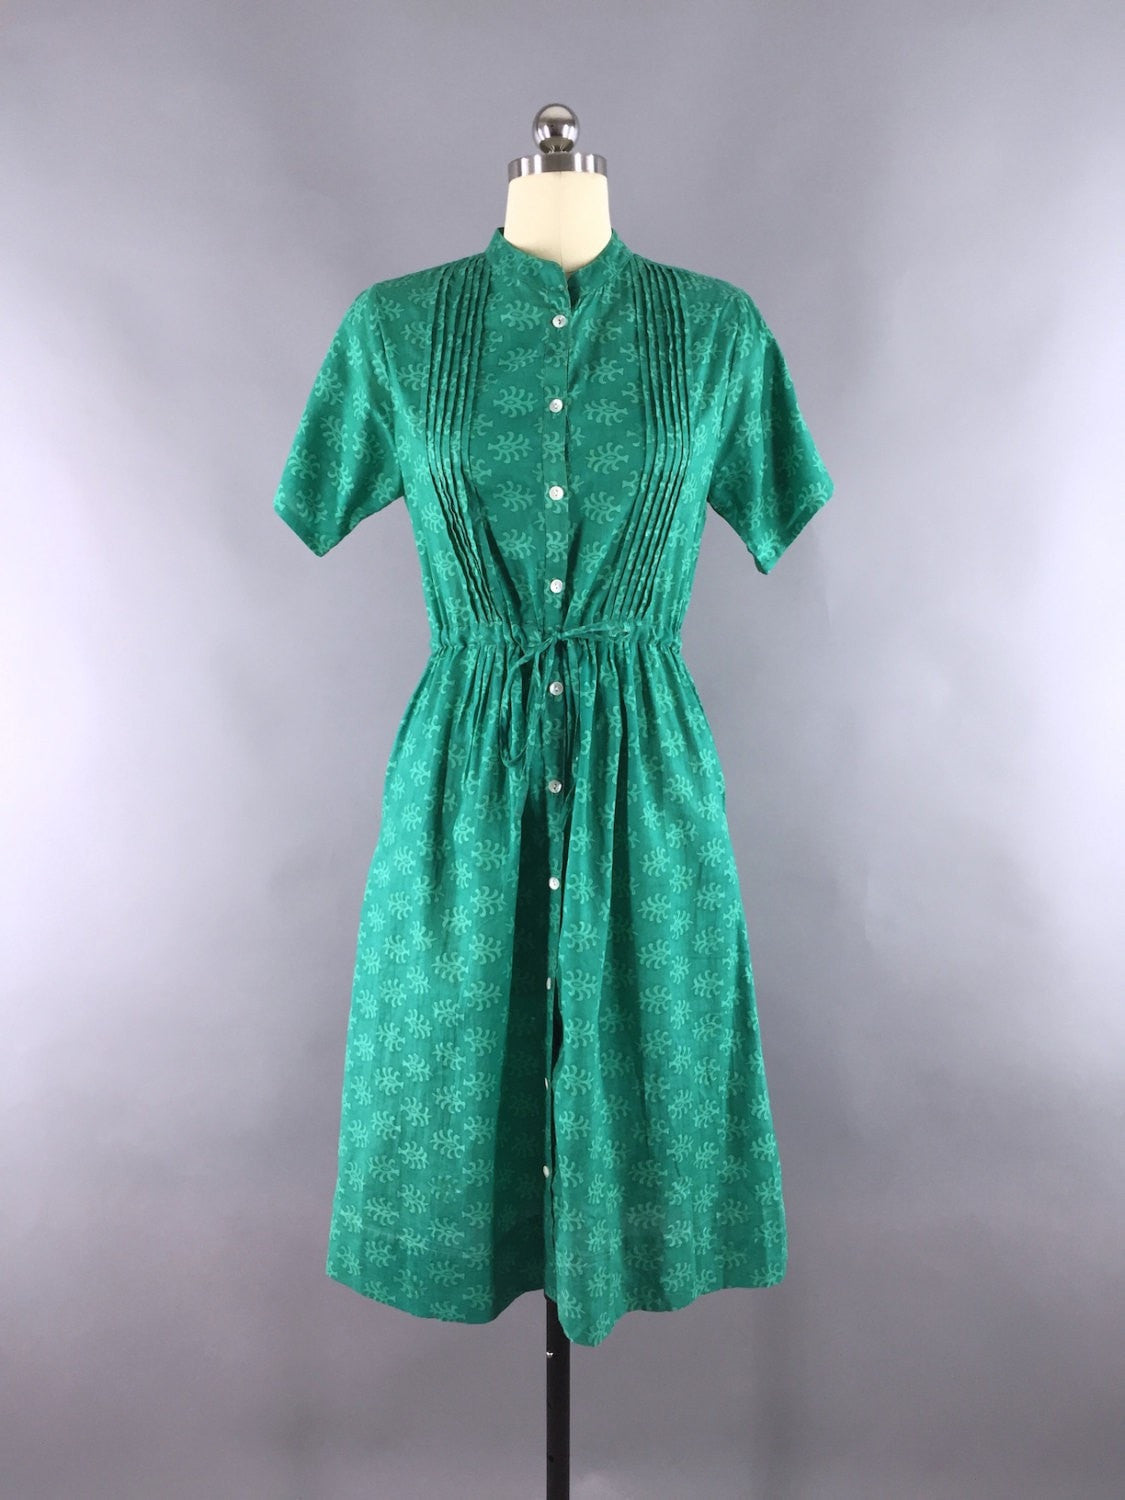 Green Block Print Indian Cotton Dress Sari Dress ThisBlueBird